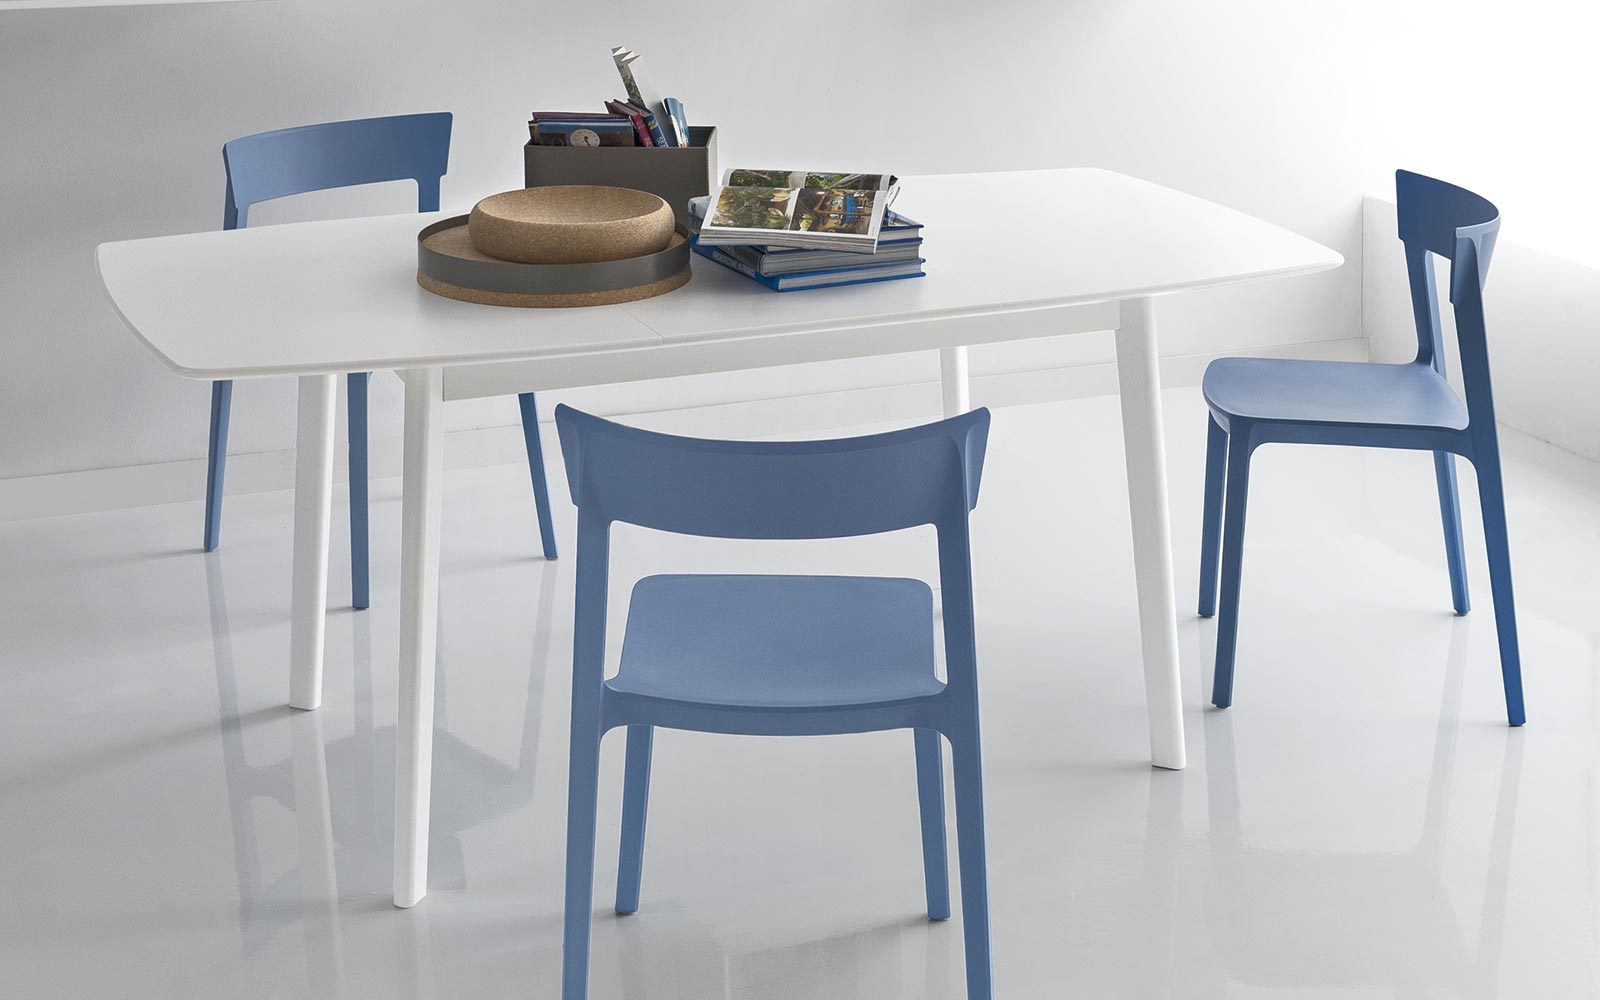 Calligaris Dining Chair - Home Design Architecture